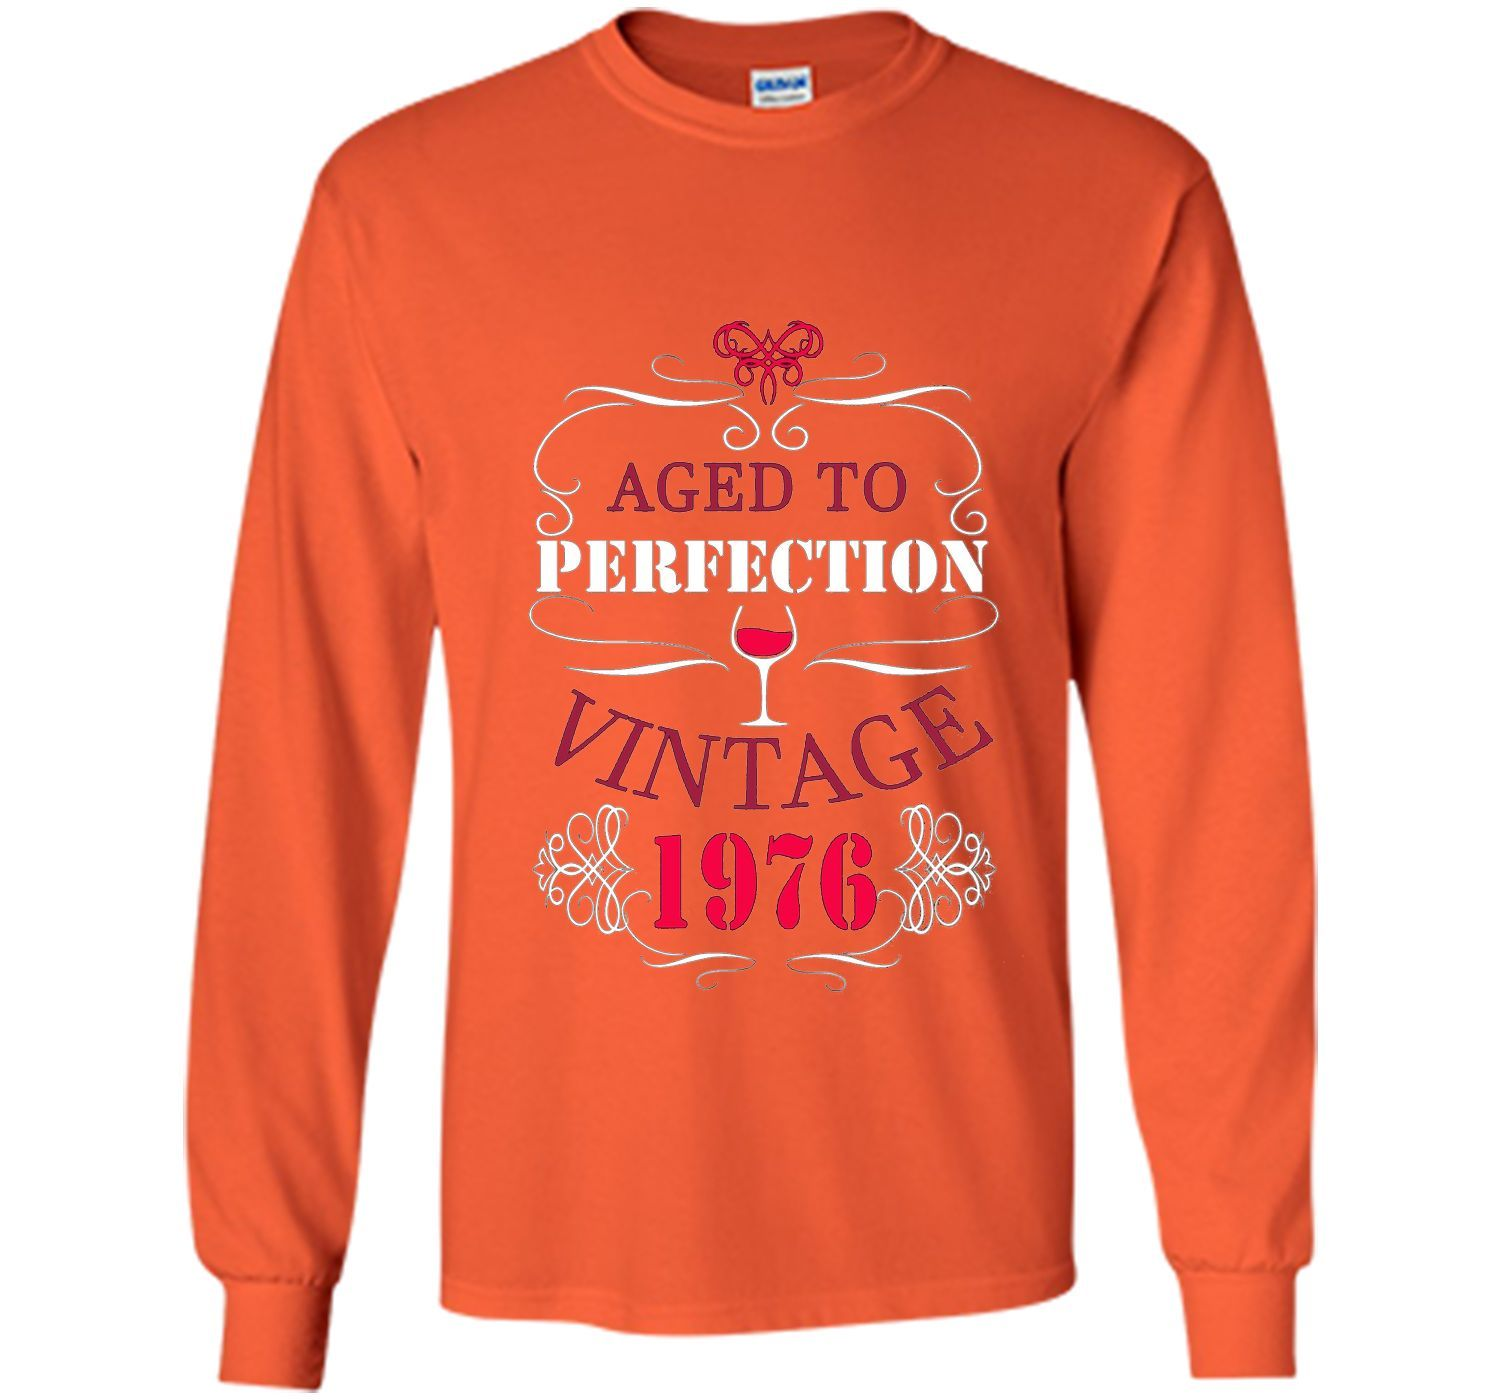 Aged to perfection vintage tshirt products pinterest